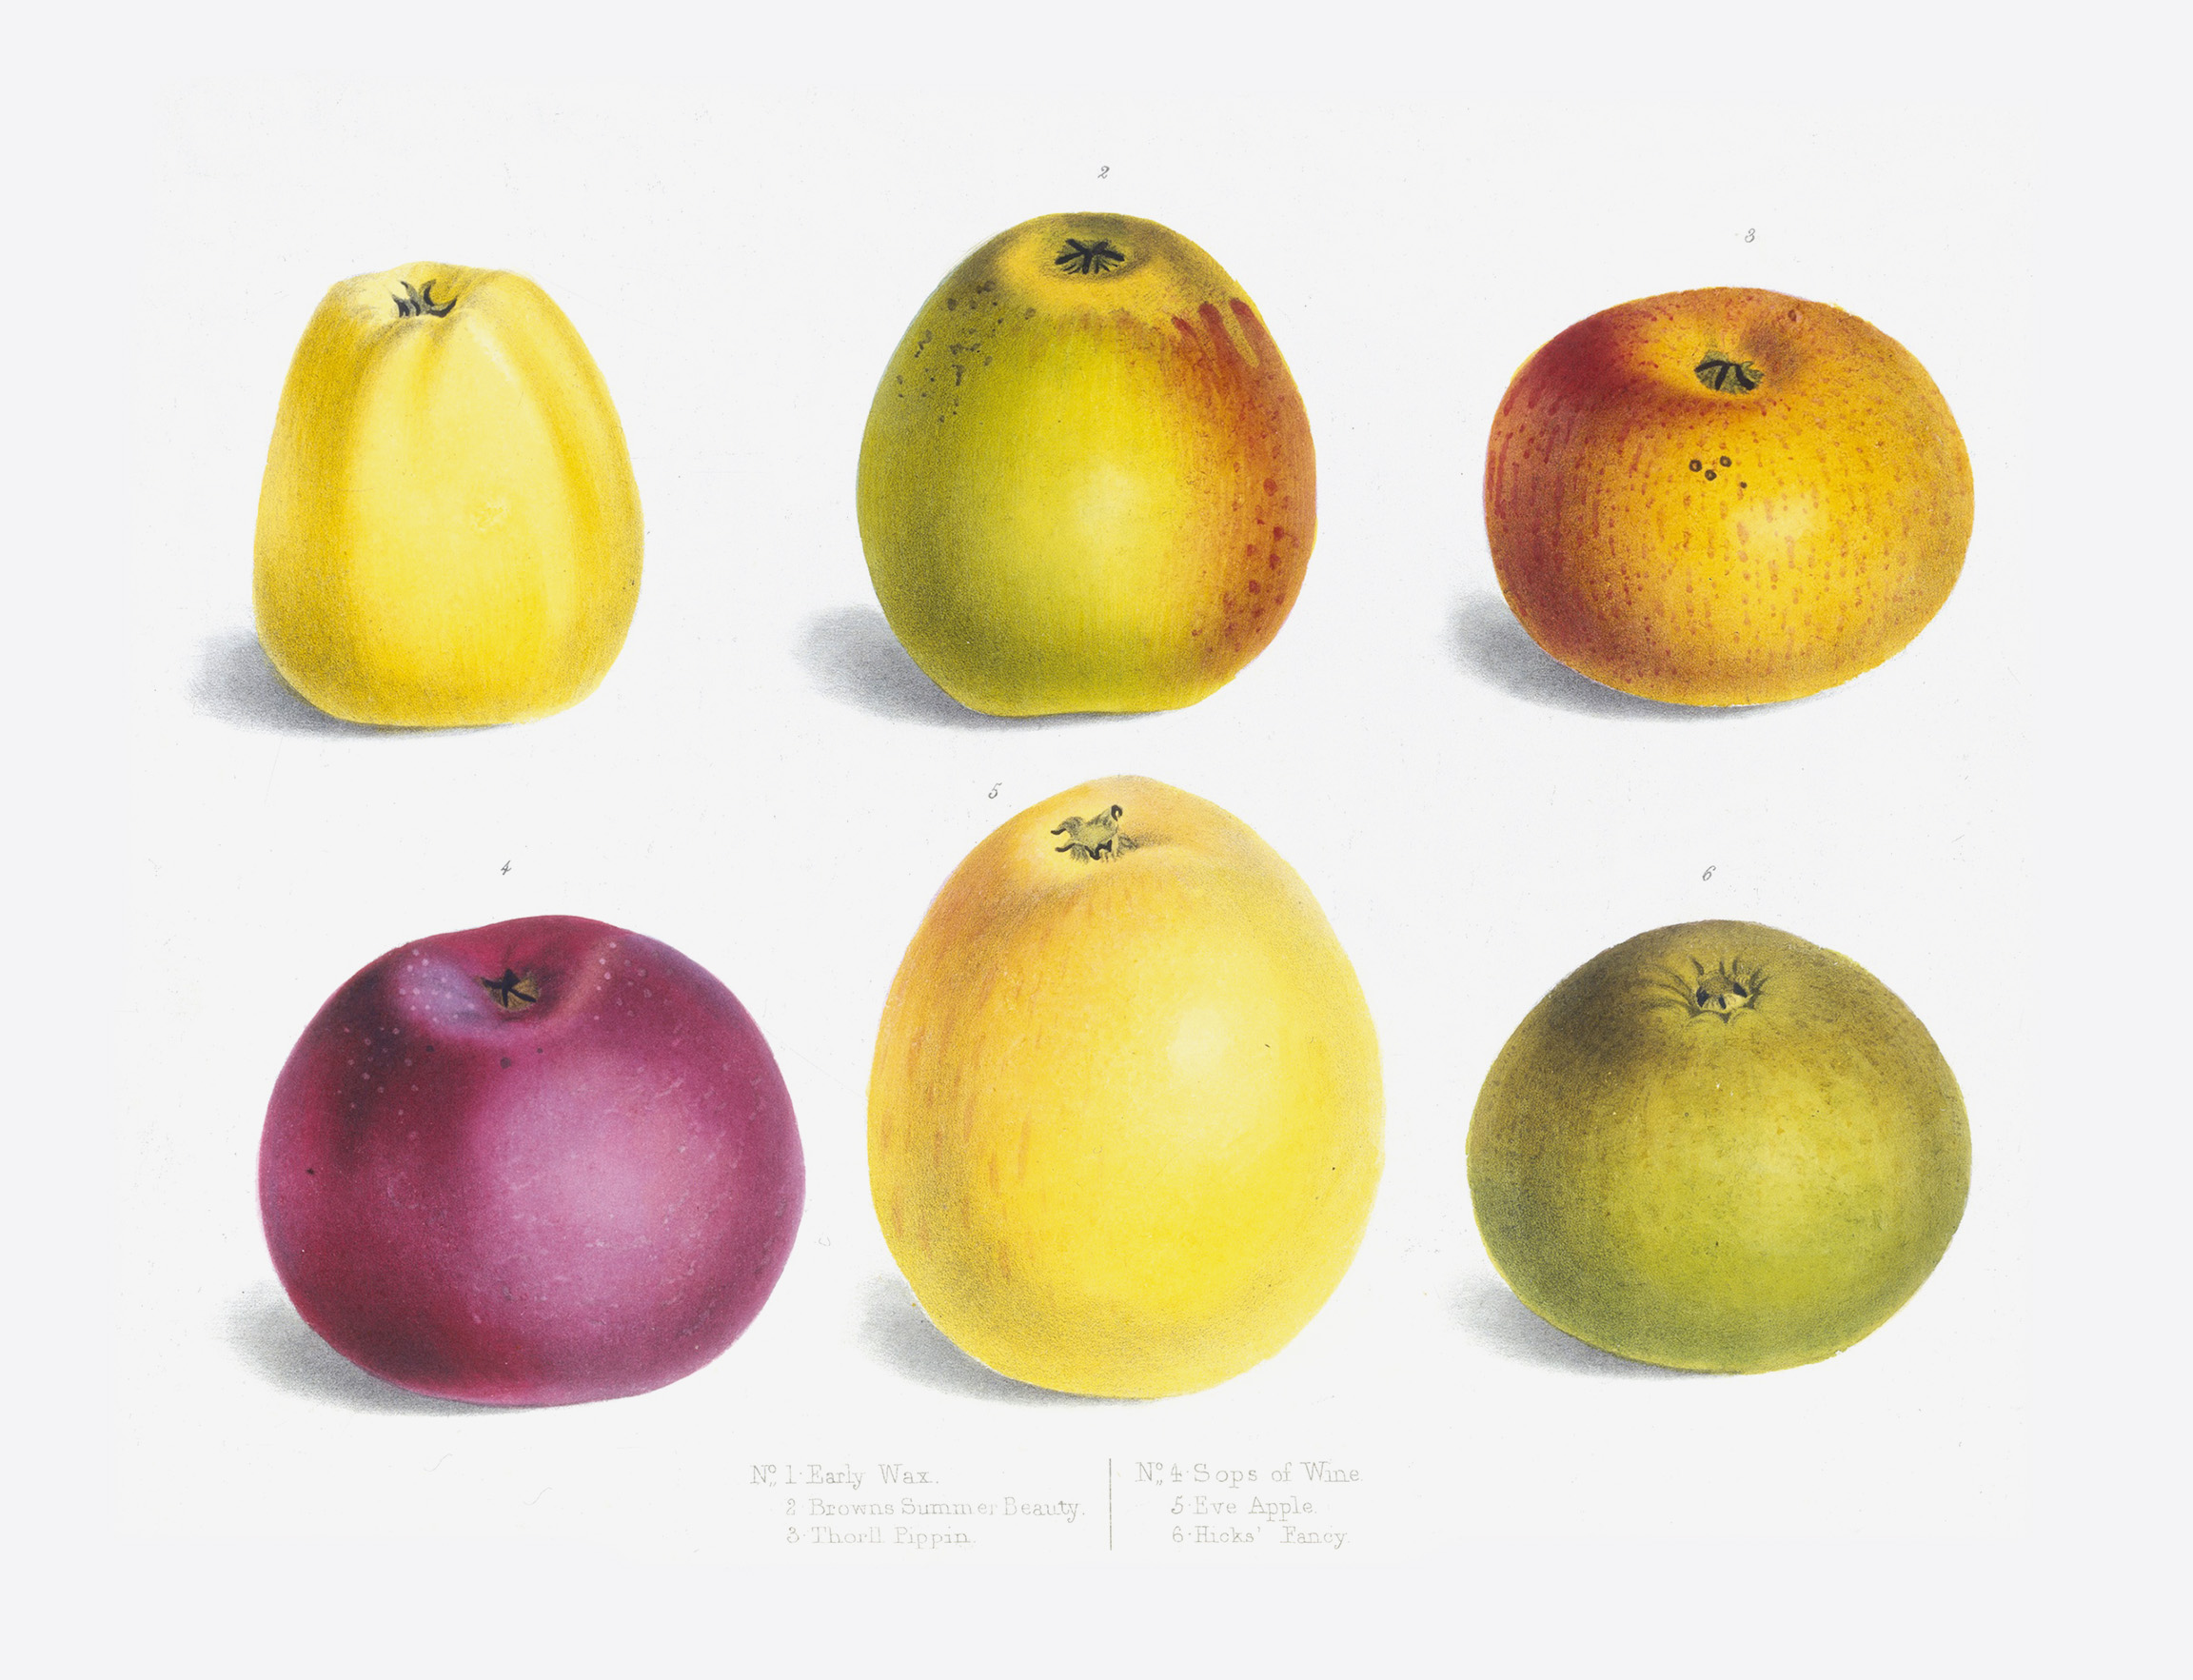 Apple 'Early wax', 'Browns Summer Beauty', 'Thorll Pippin', 'Sops of wine', 'Eve apple', 'Hicks Fancy'